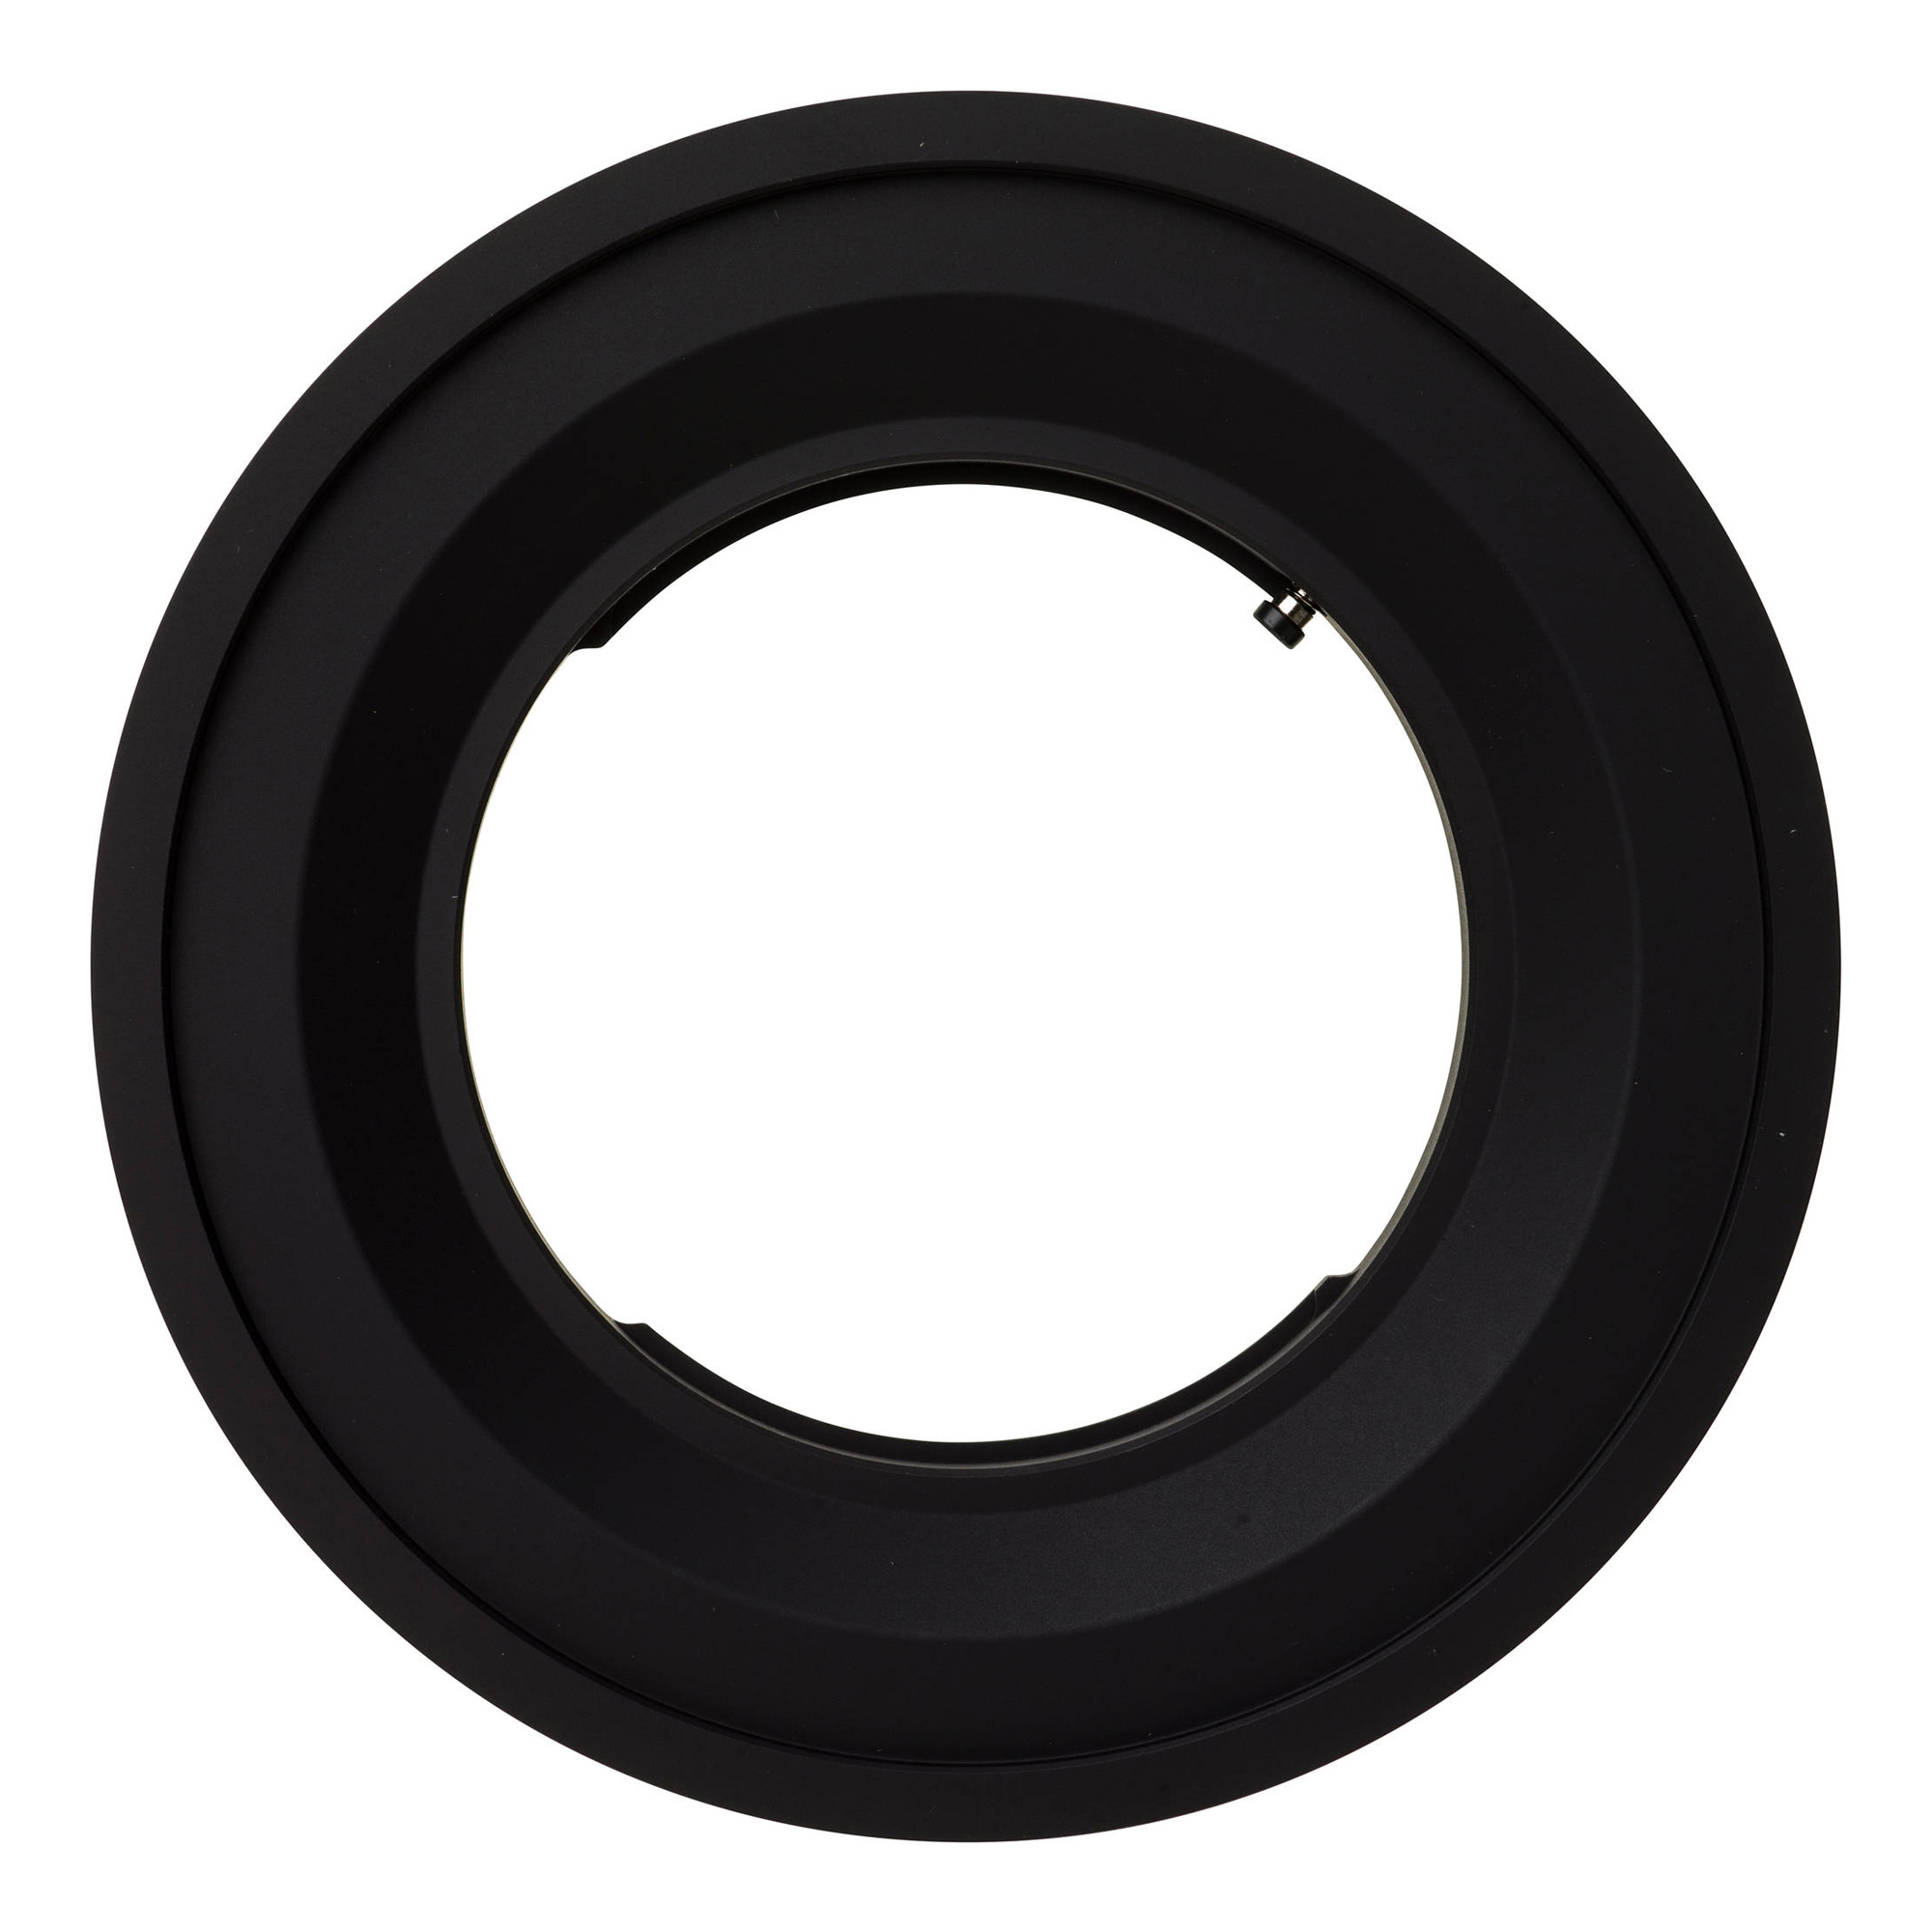 150mm Professional Filter Holder Lens Ring for Canon TS-E 17mm f/4L UD Lens